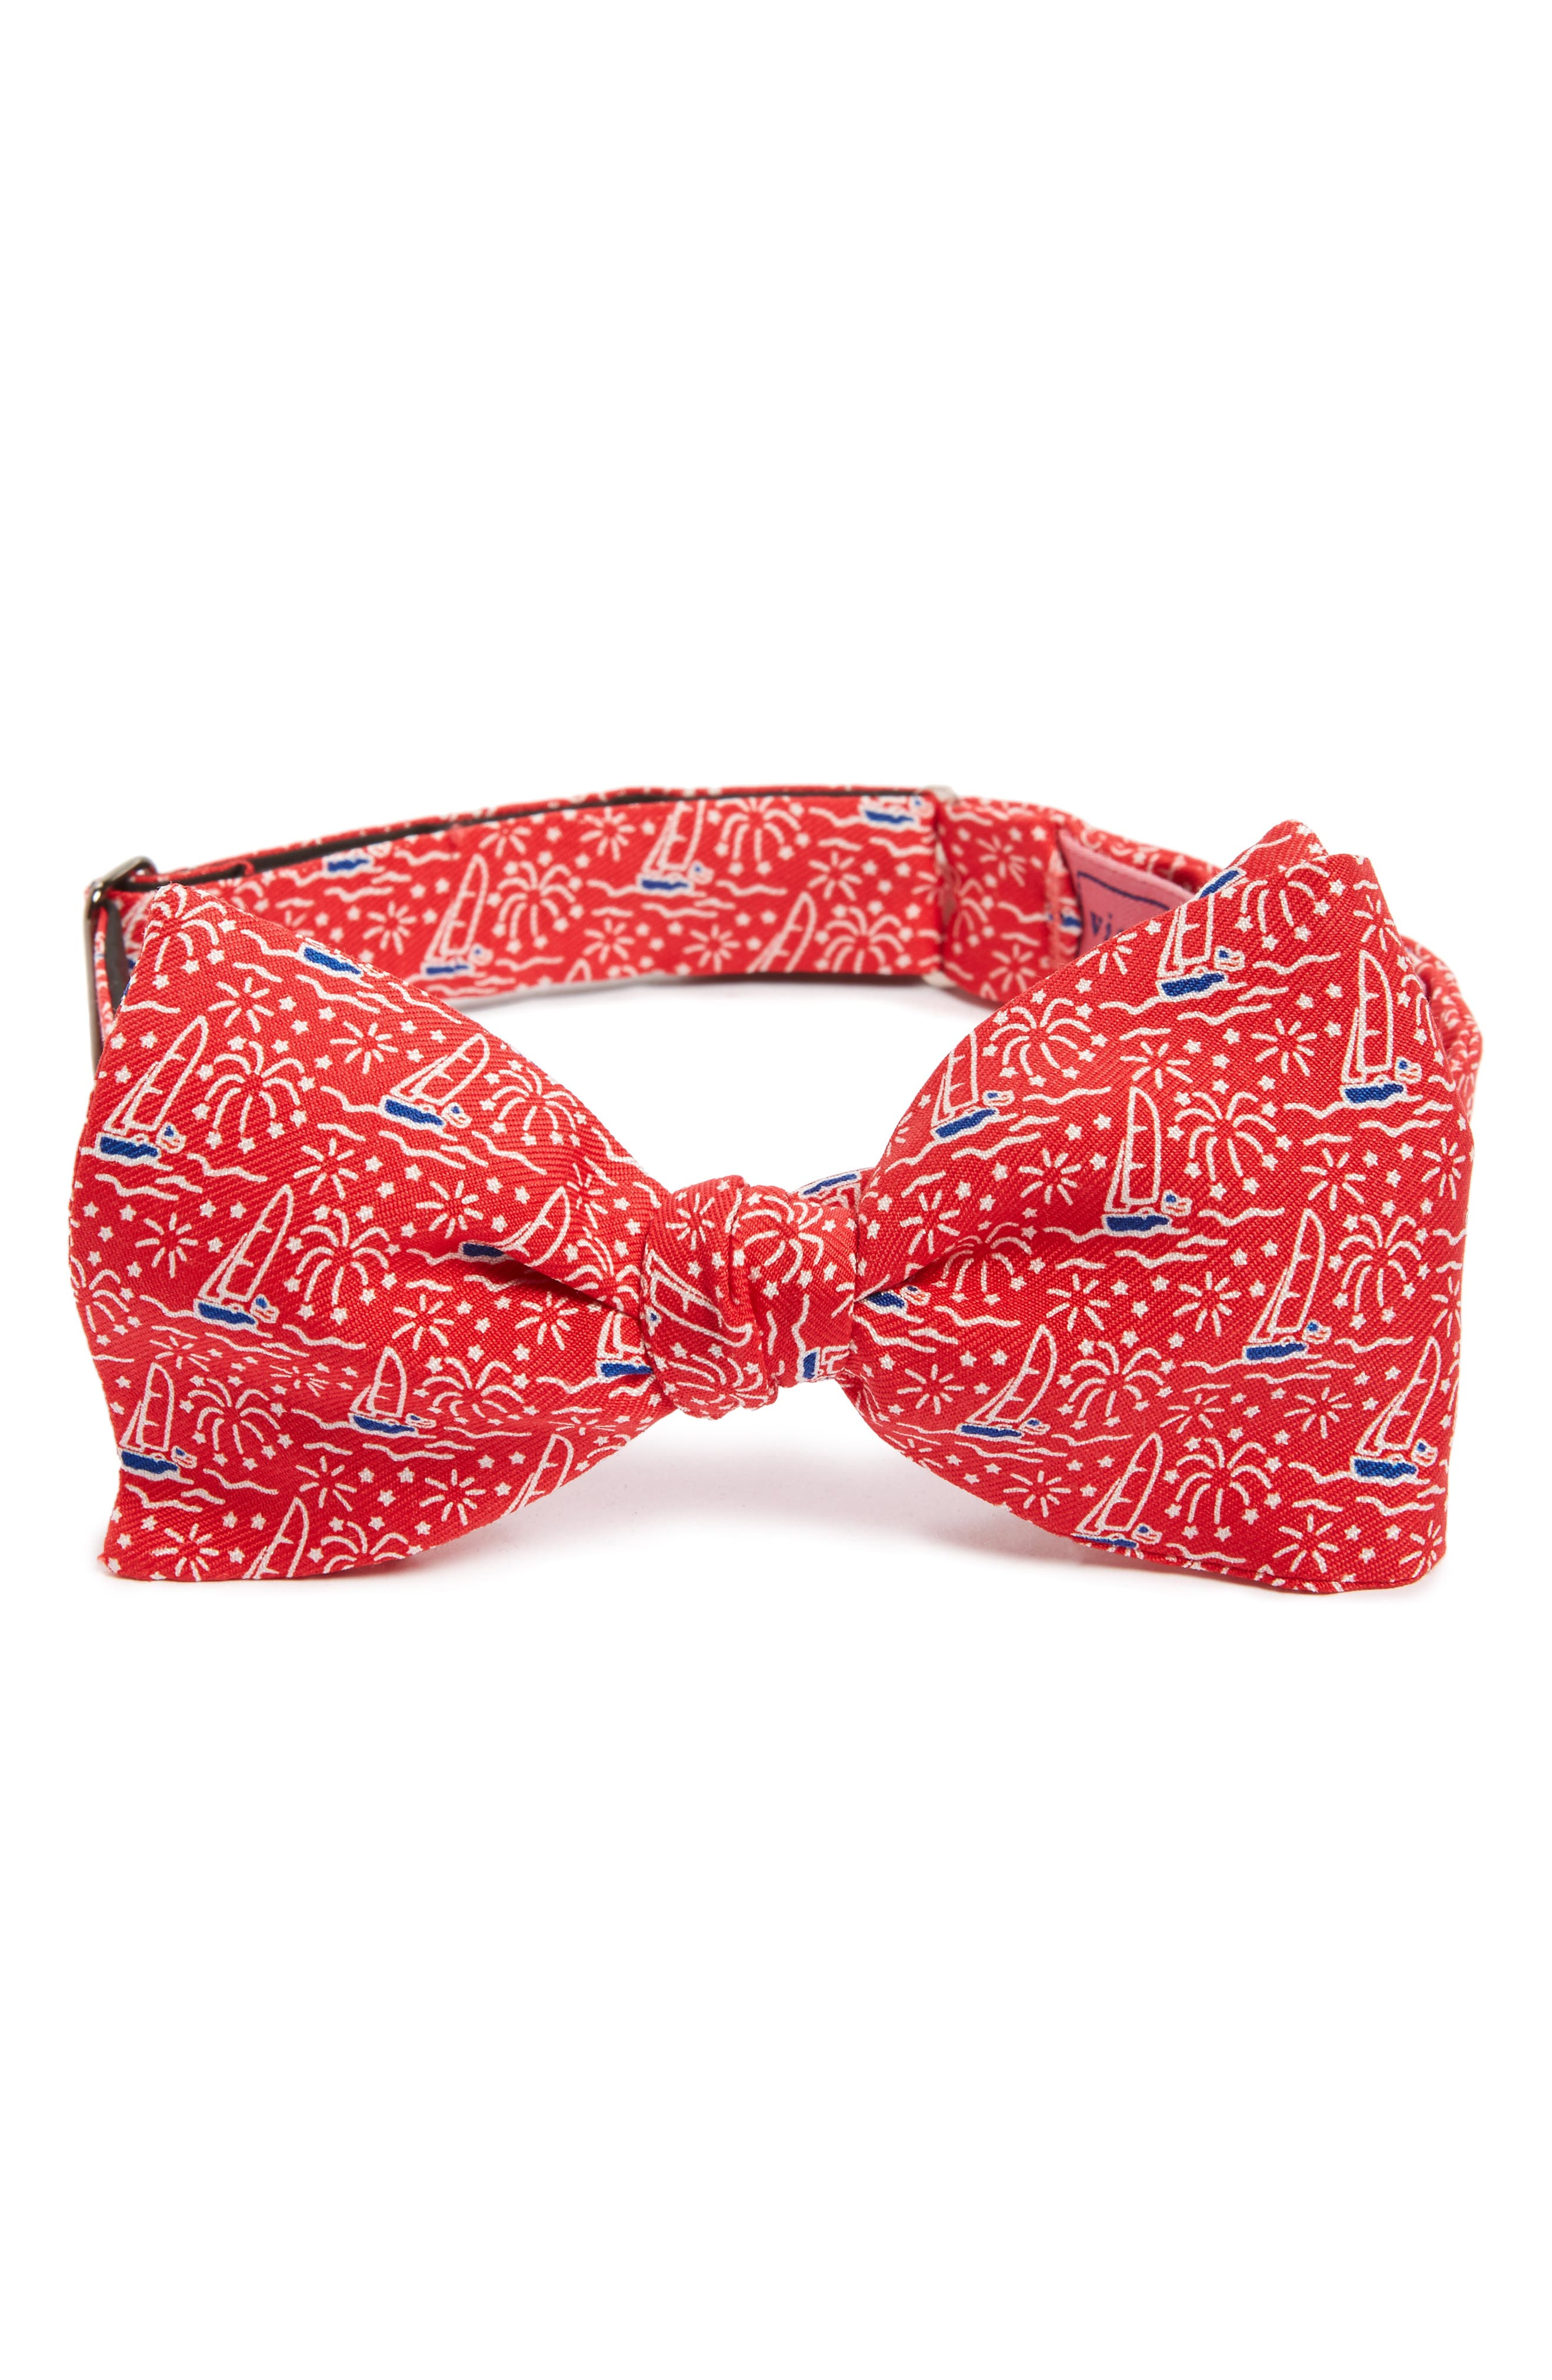 Sailing Bow Tie,                         Main,                         color, 610